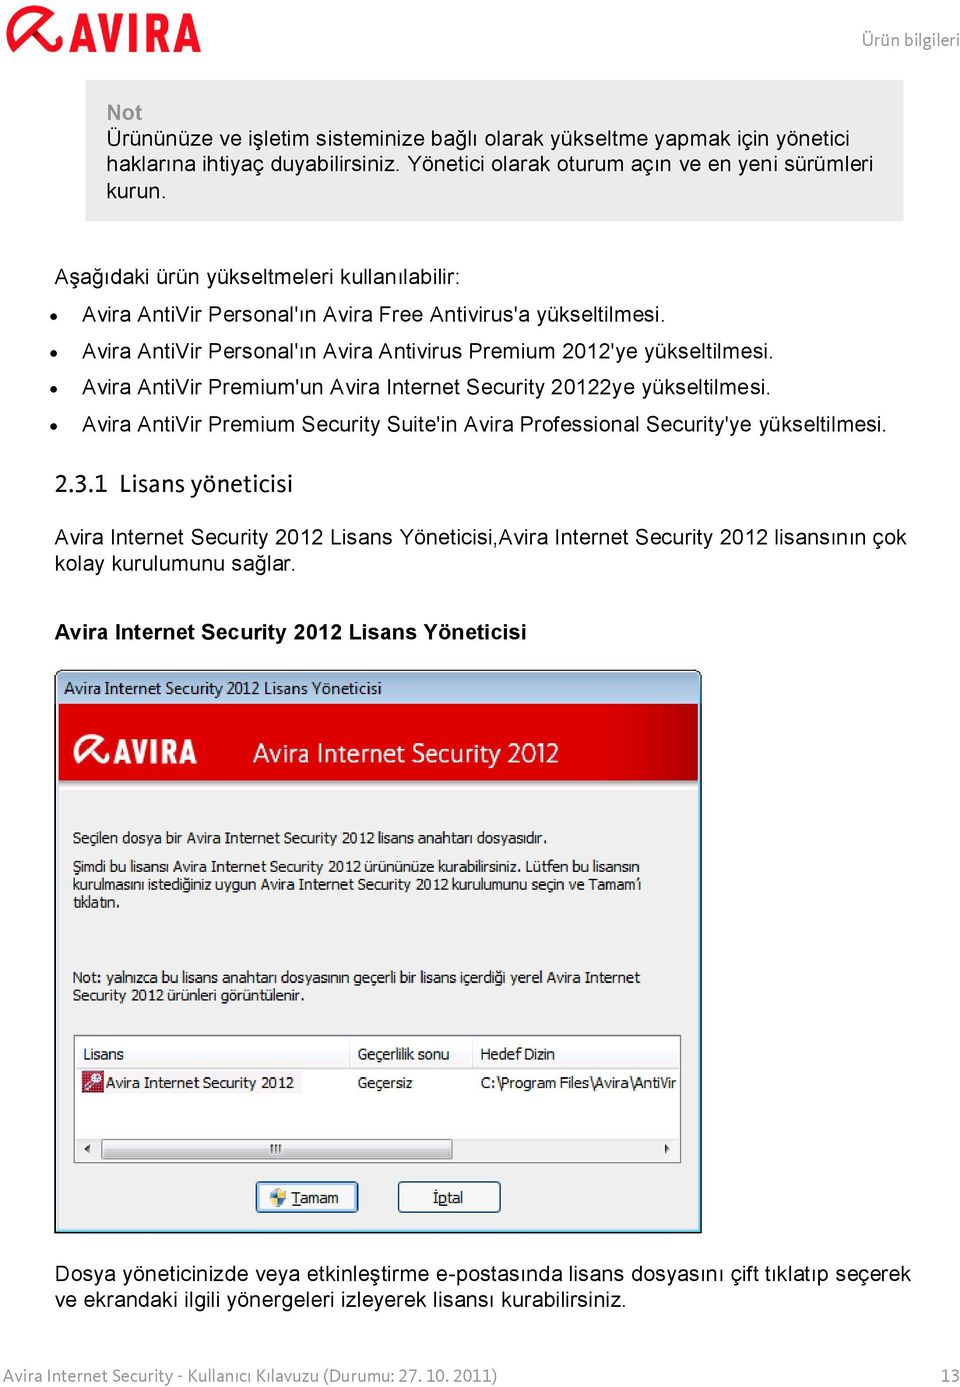 Avira AntiVir Premium'un Avira Internet Security 20122ye yükseltilmesi. Avira AntiVir Premium Security Suite'in Avira Professional Security'ye yükseltilmesi. 2.3.